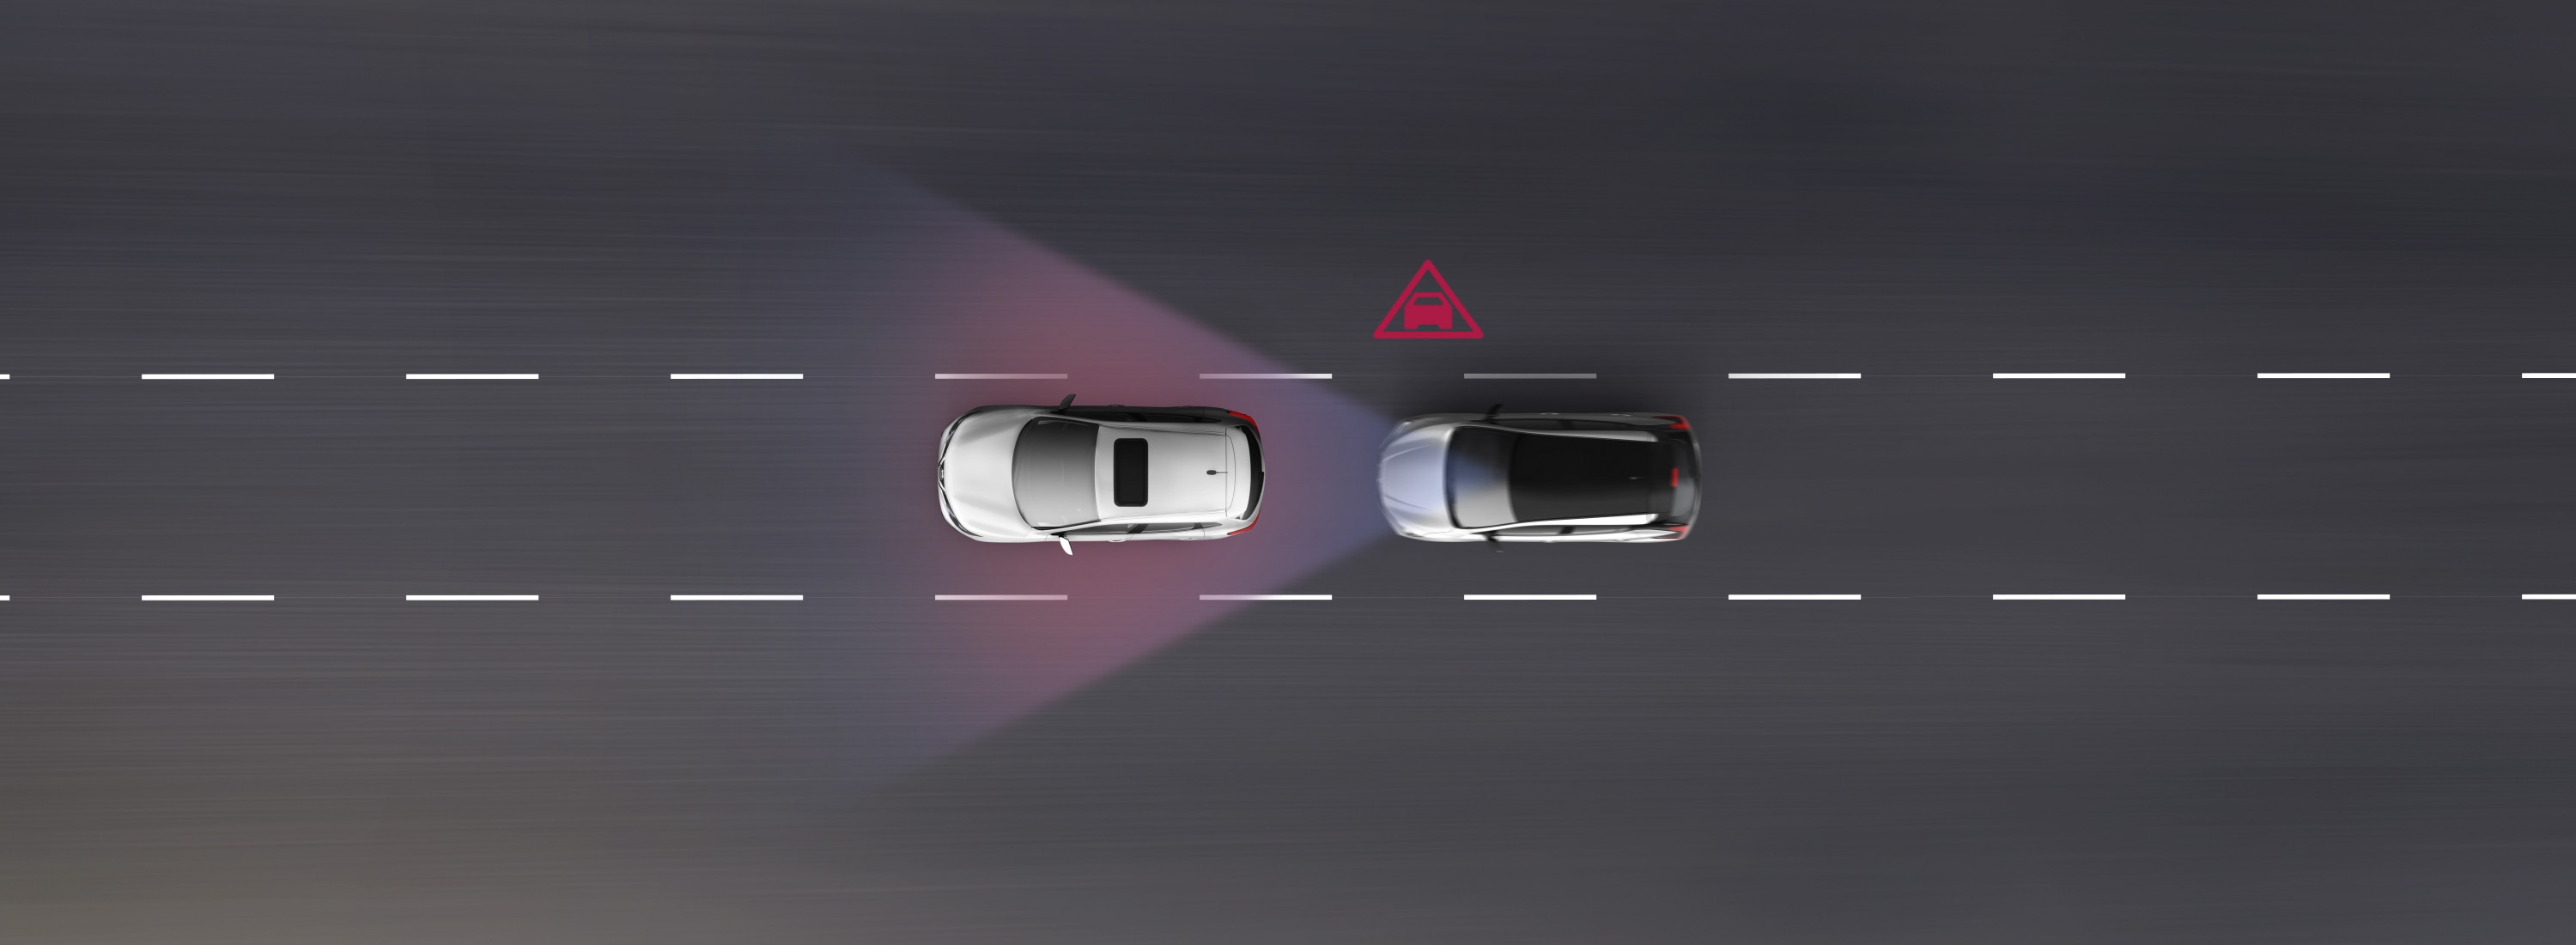 New Nissan LEAF Intelligent Emergency Braking animation